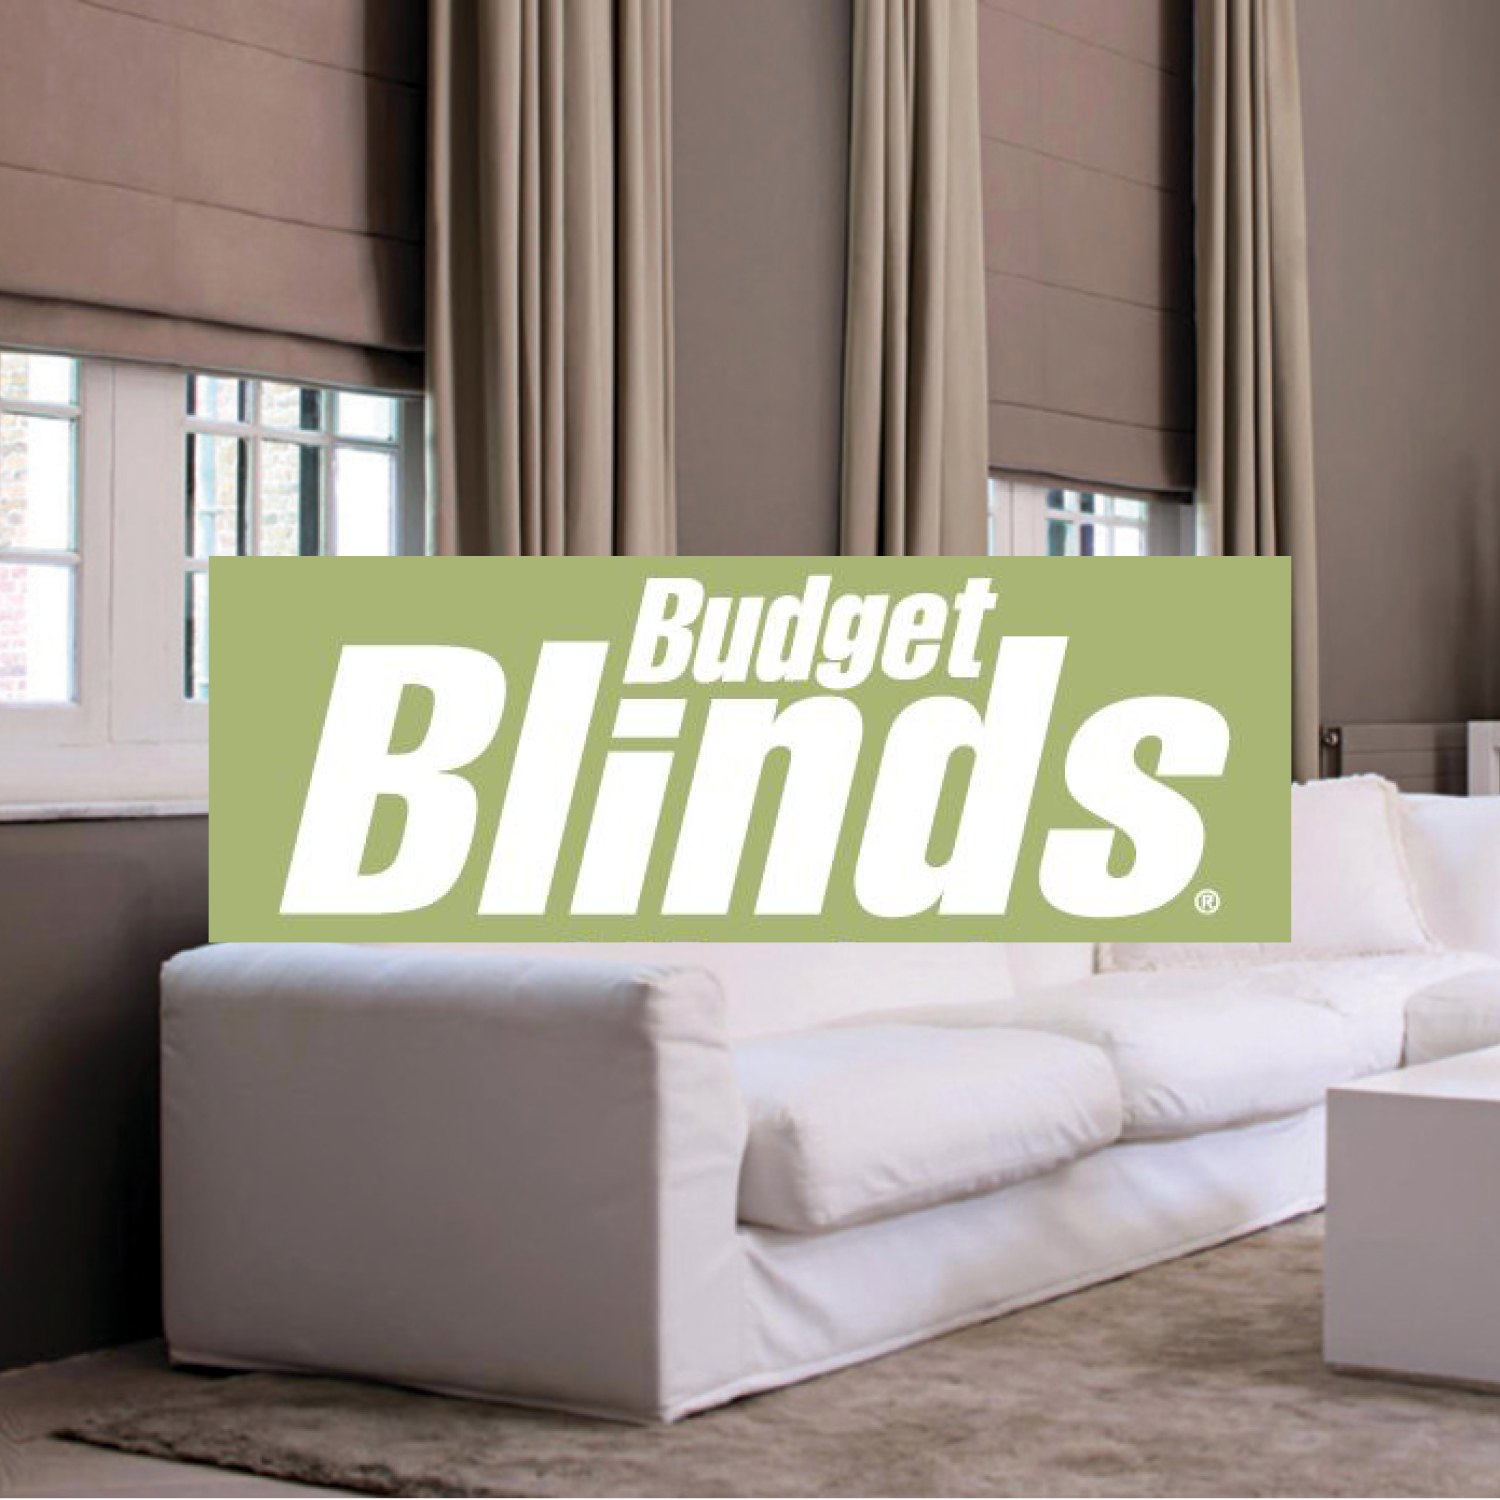 We'll bring you the highest quality and most fashionable window coverings in Hagerstown and surrounding areas. Looking forward to helping you beautify your home!     -Click image to view current offers-    .